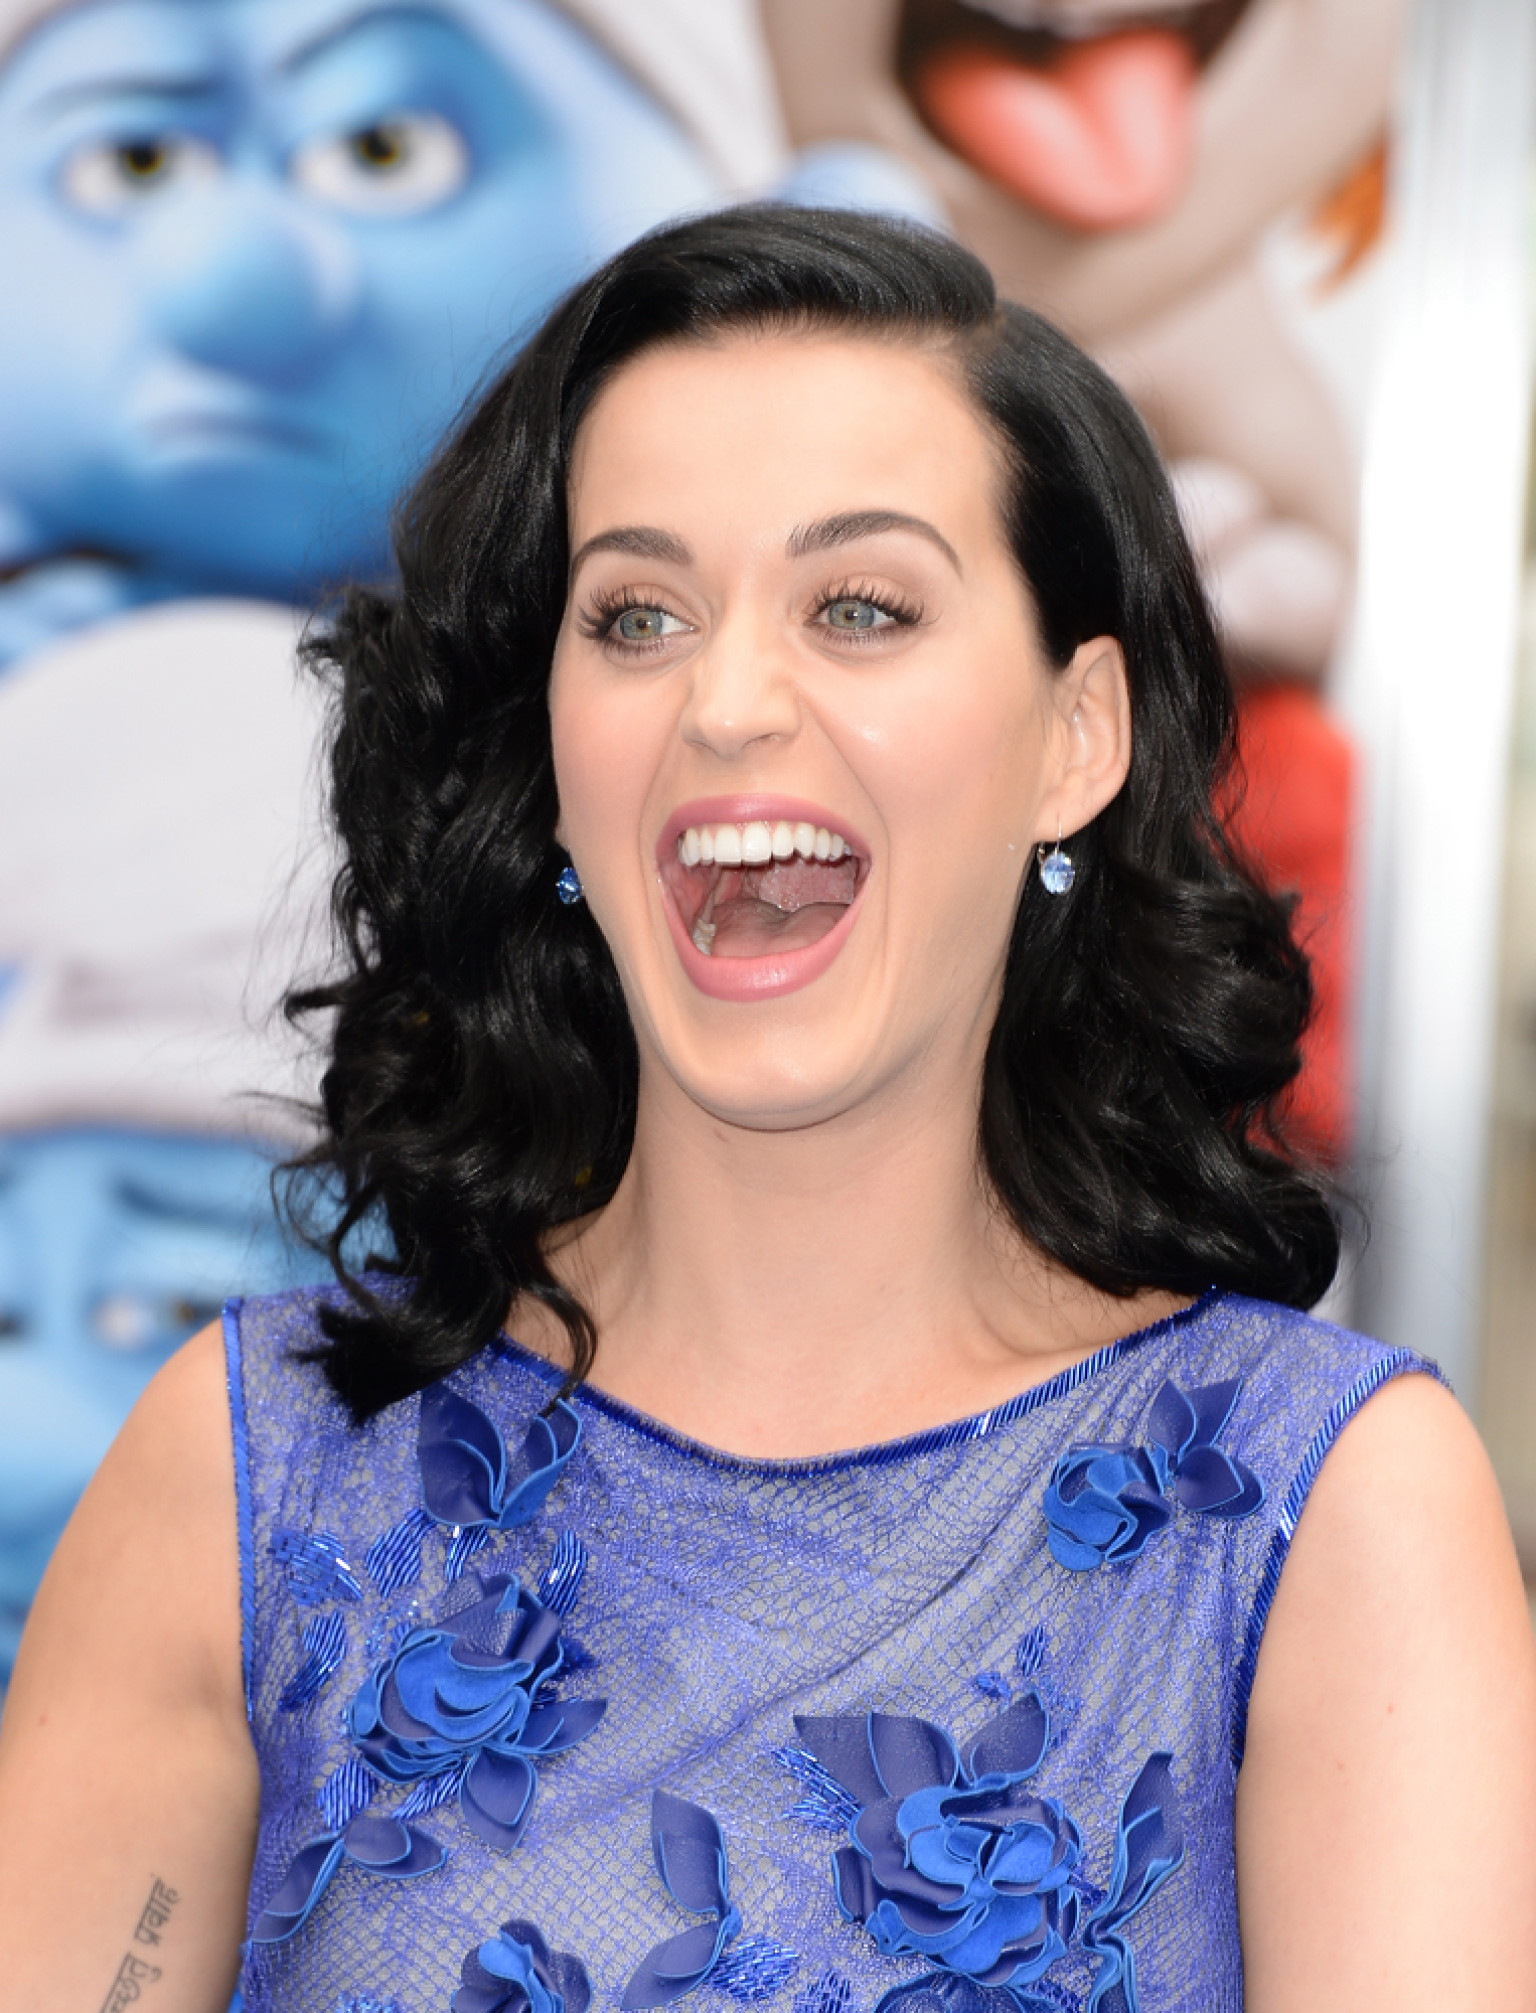 Free coloring pages katy perry - Katy Perry S Roar Announced As First Single Off Prism Not So Fast Say Perry S Camp Huffpost